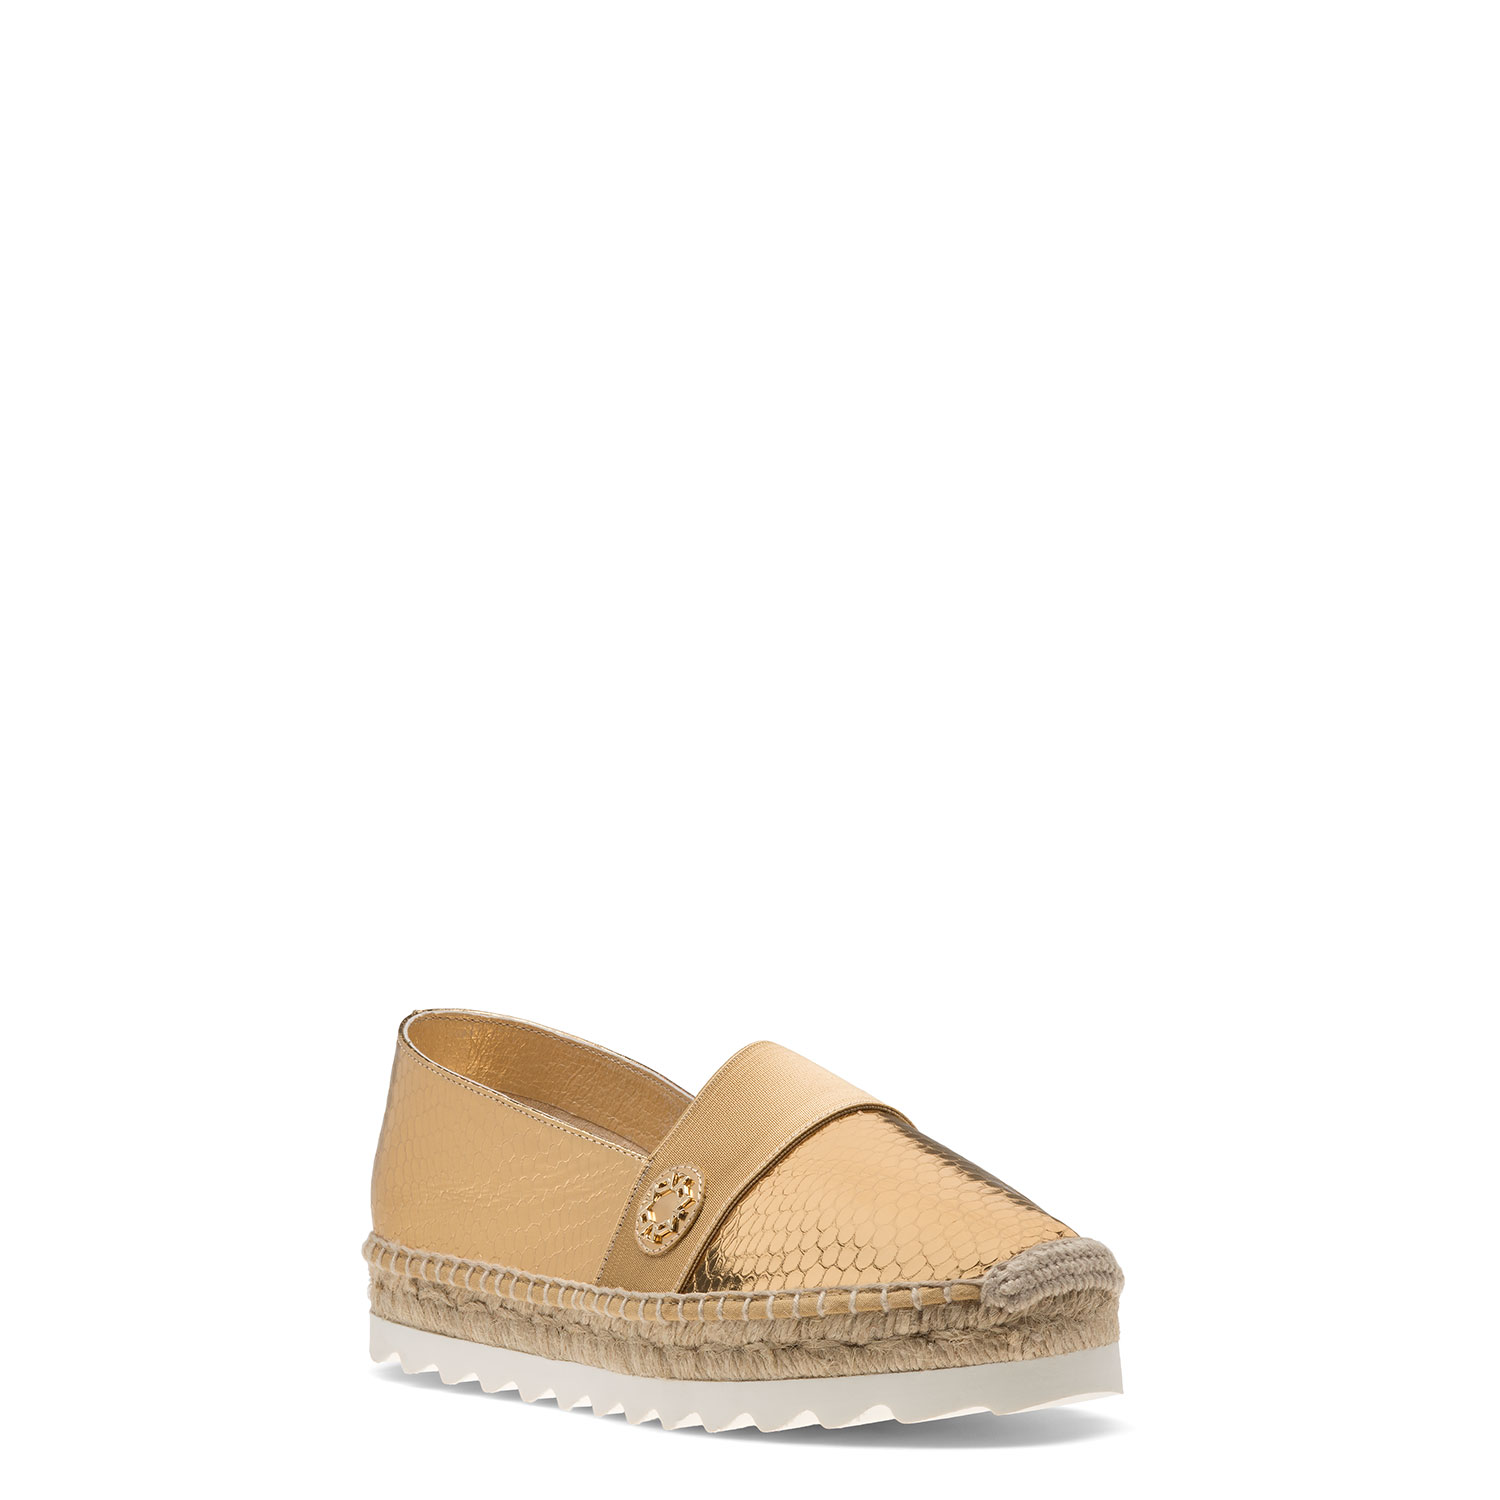 Women's shoes PAZOLINI CT-HOM1-7